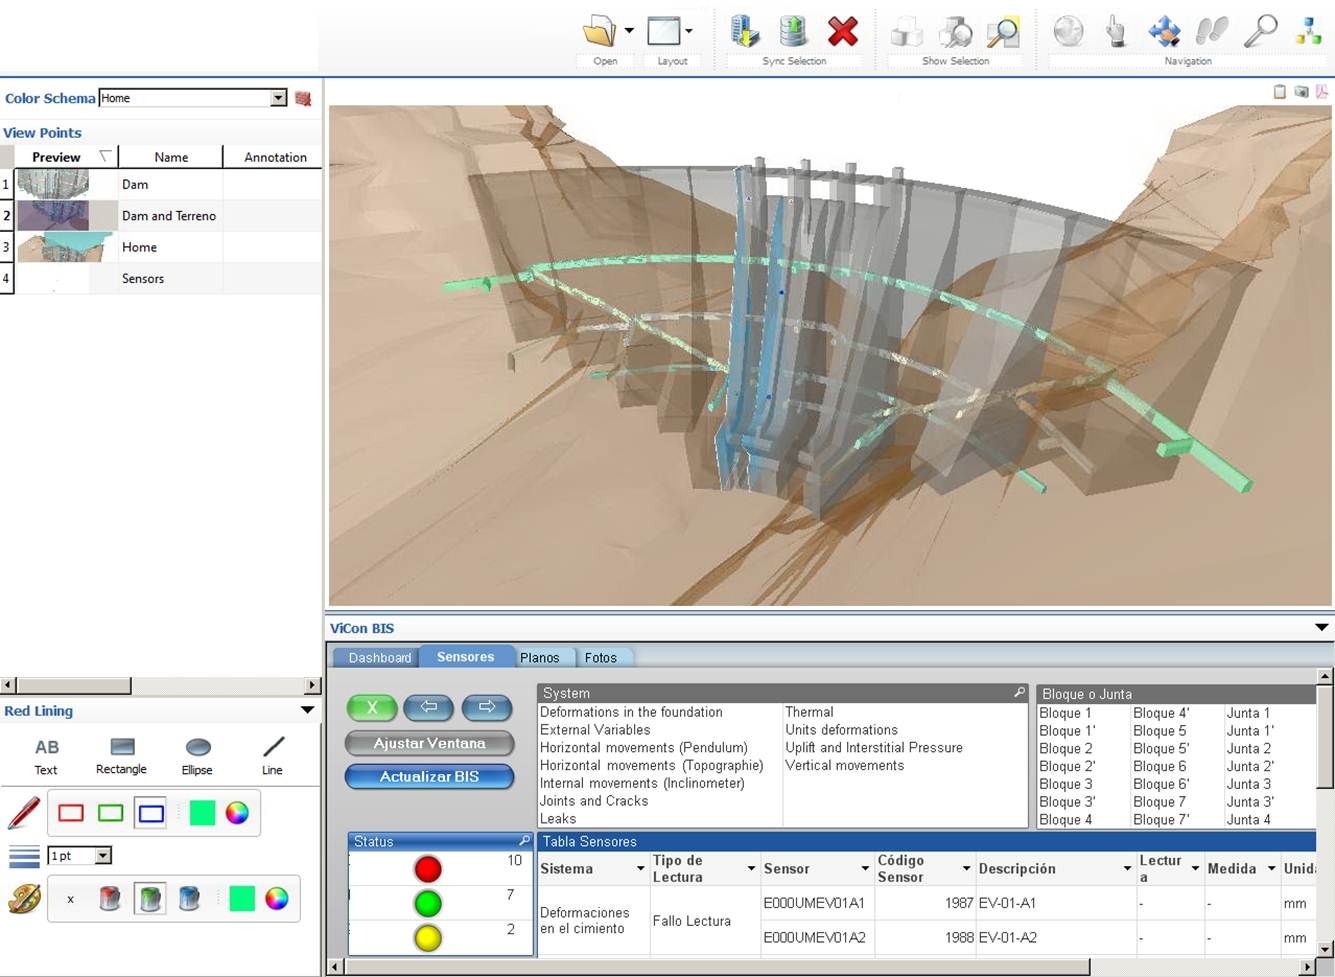 NEW STRUCTURAL HEALTH MONITORING TECHNIQUES INTEGRATED WITH BIM